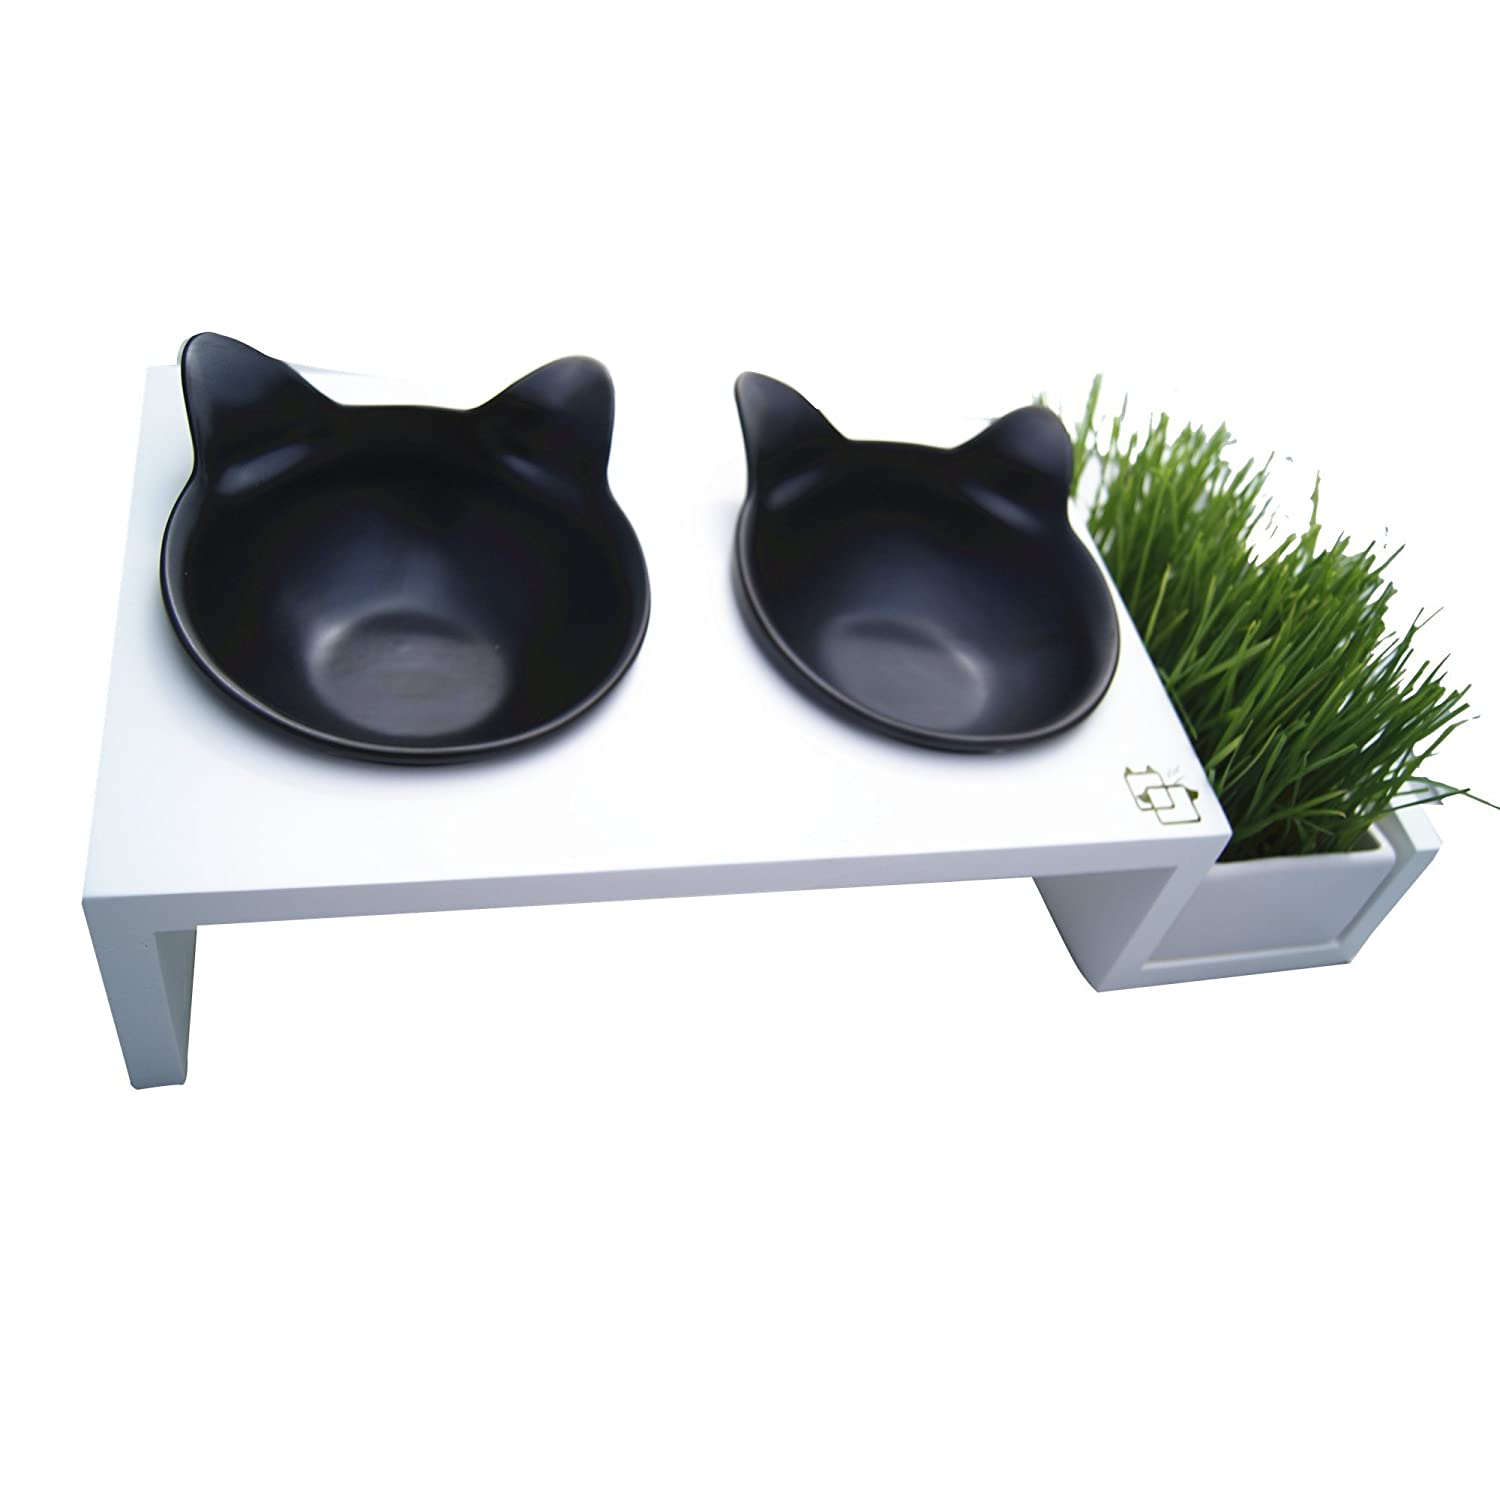 pros pet ceramic table the review planter cat dining with elevated vivipet feeder cons